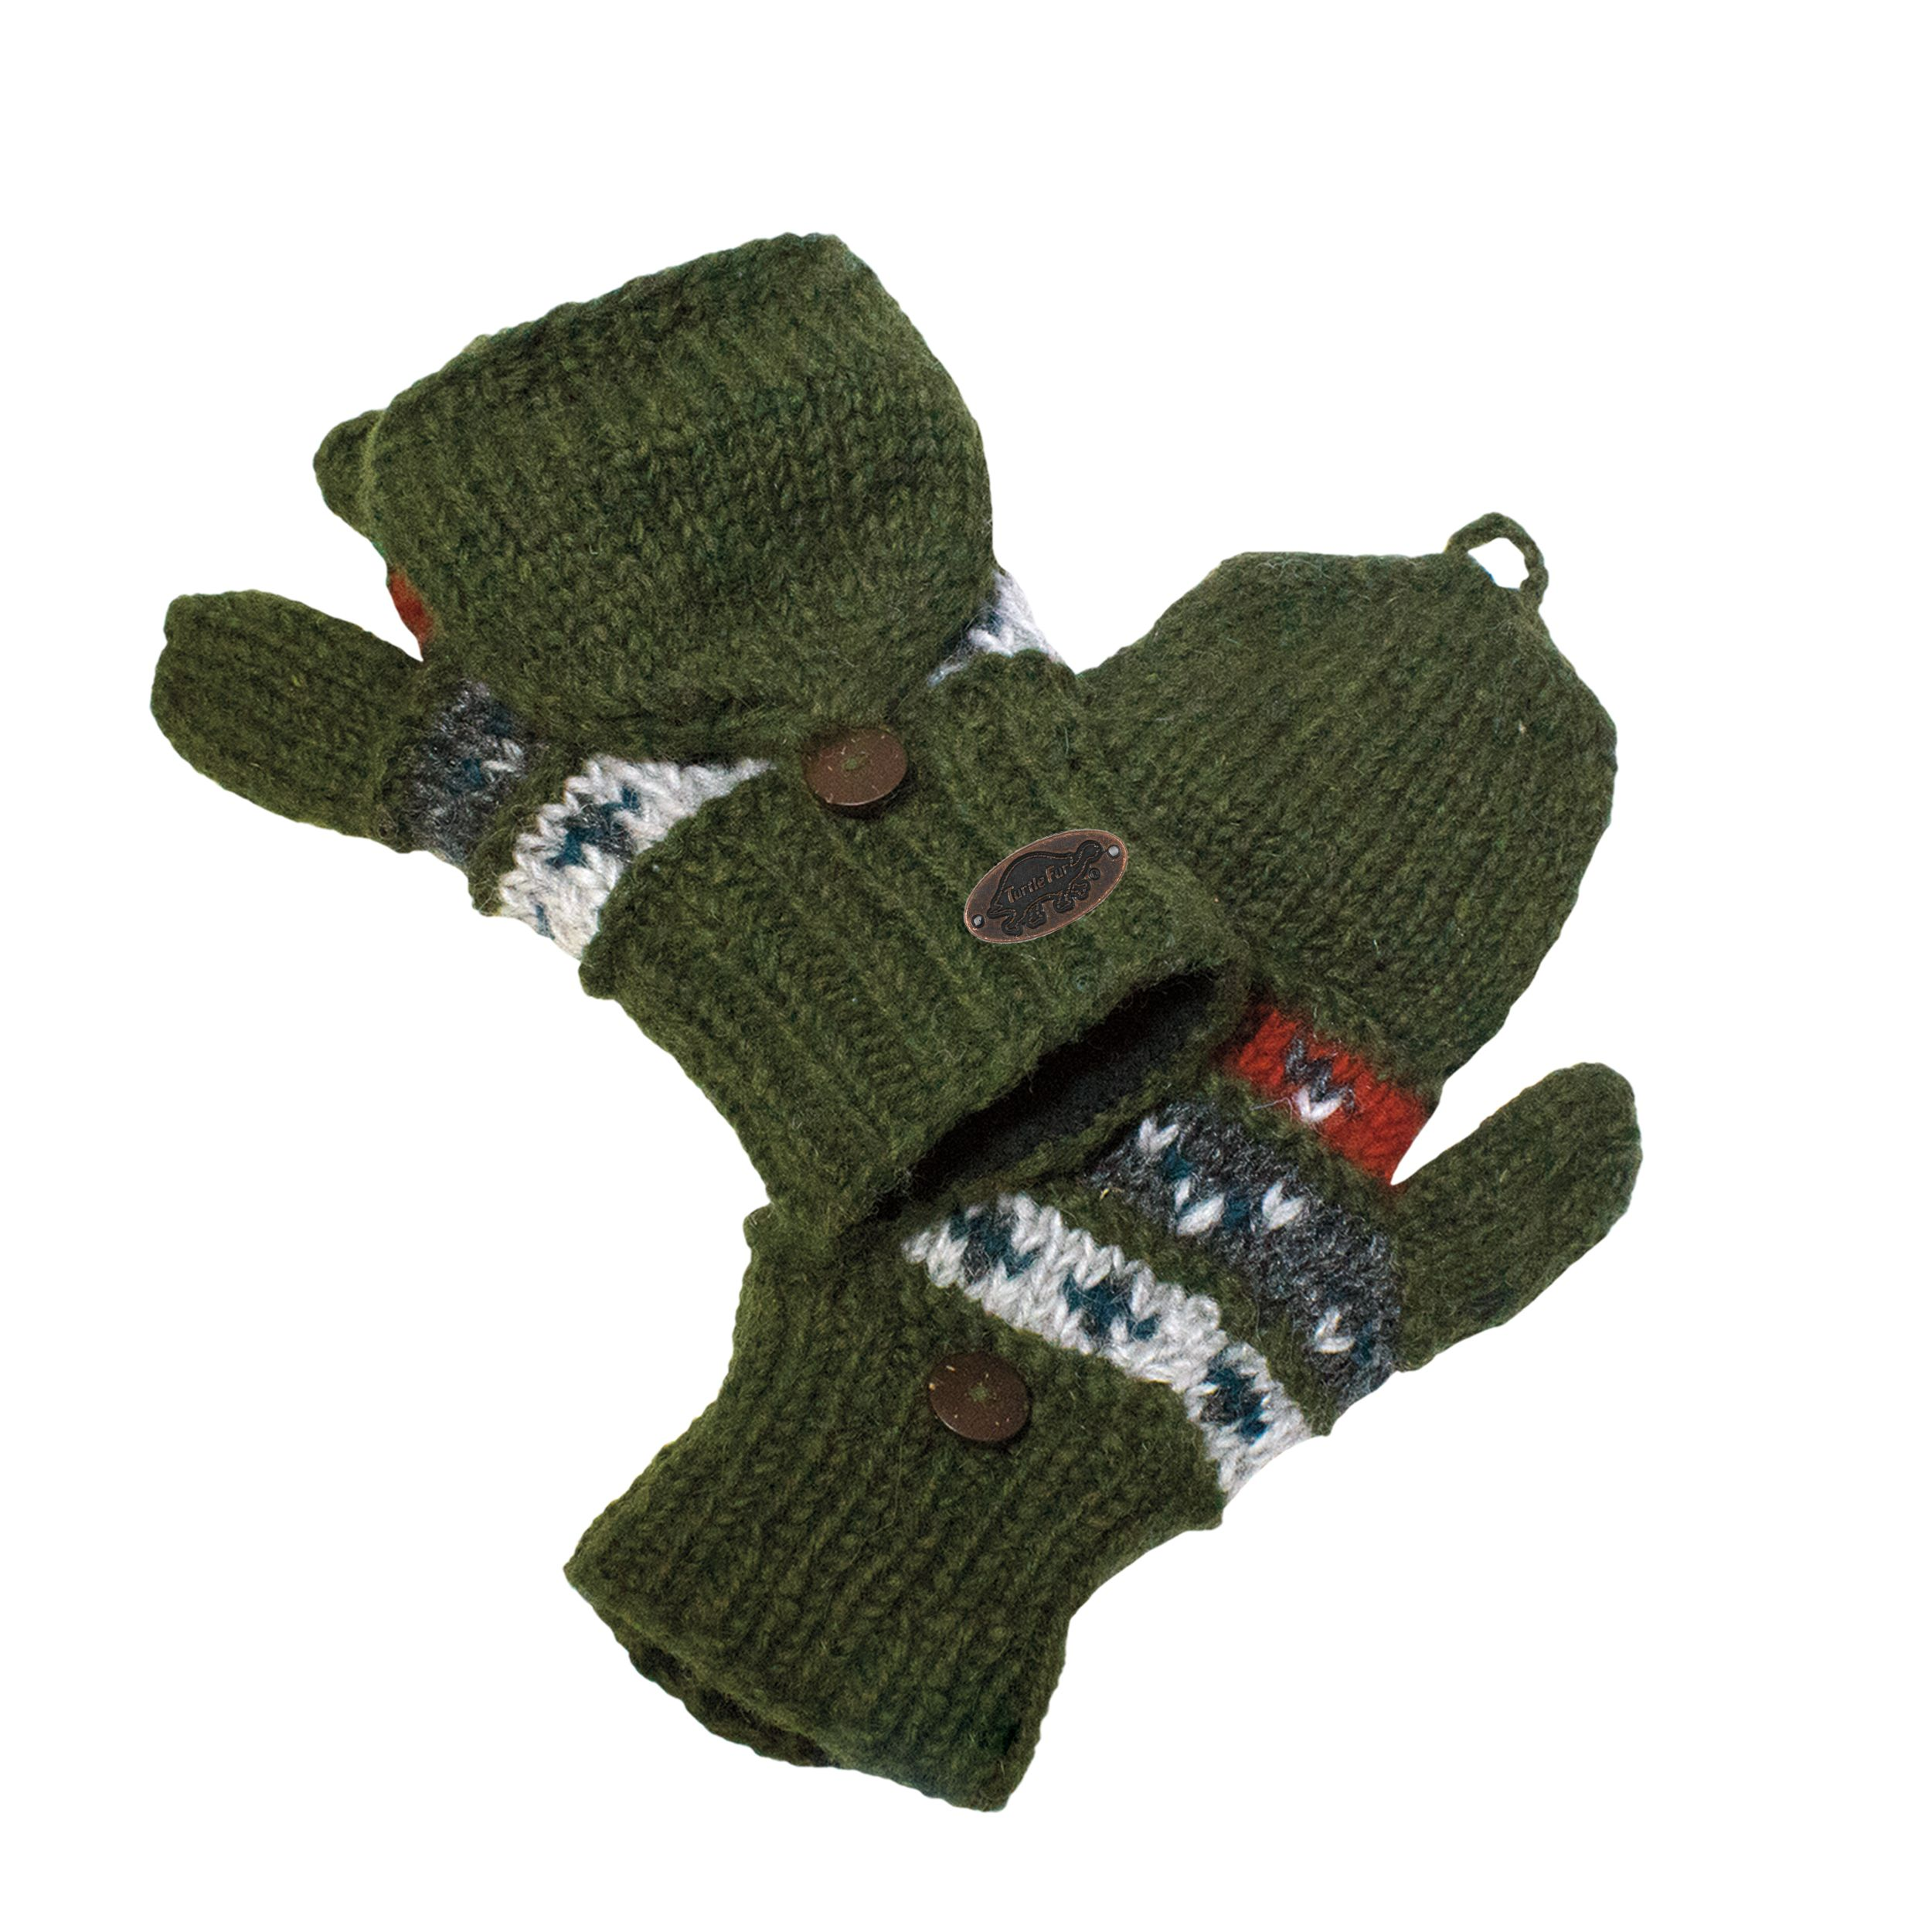 we're  #smitten with #wool #nepal collection #mittens - they're #handknit #stockingstuffers from #turtlefur